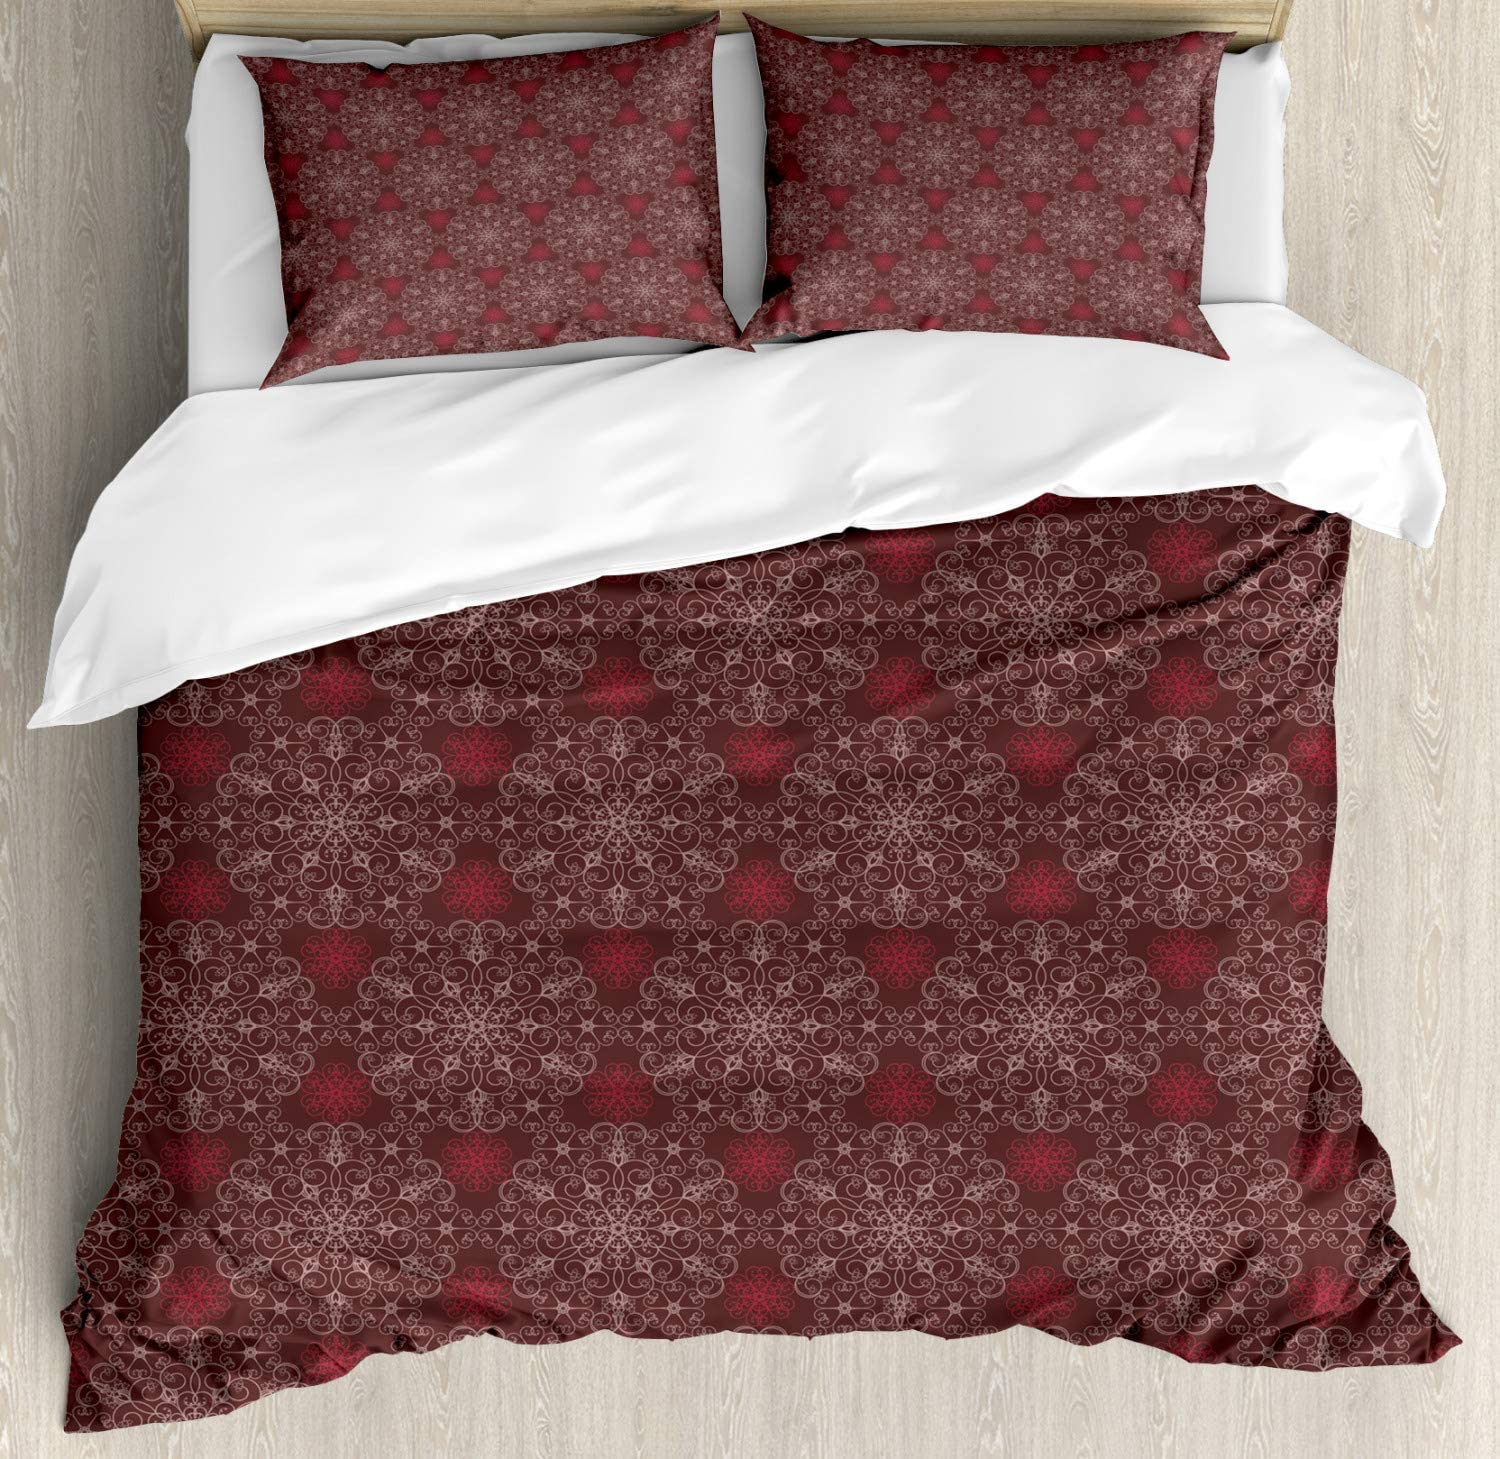 Ambesonne Maroon Duvet Cover Set, Detailed Ornate Flowers Curves Swirls Petals Dusky Victorian Garden, Decorative 3 Piece Bedding Set with 2 Pillow Shams, King Size, Burgundy Maroon